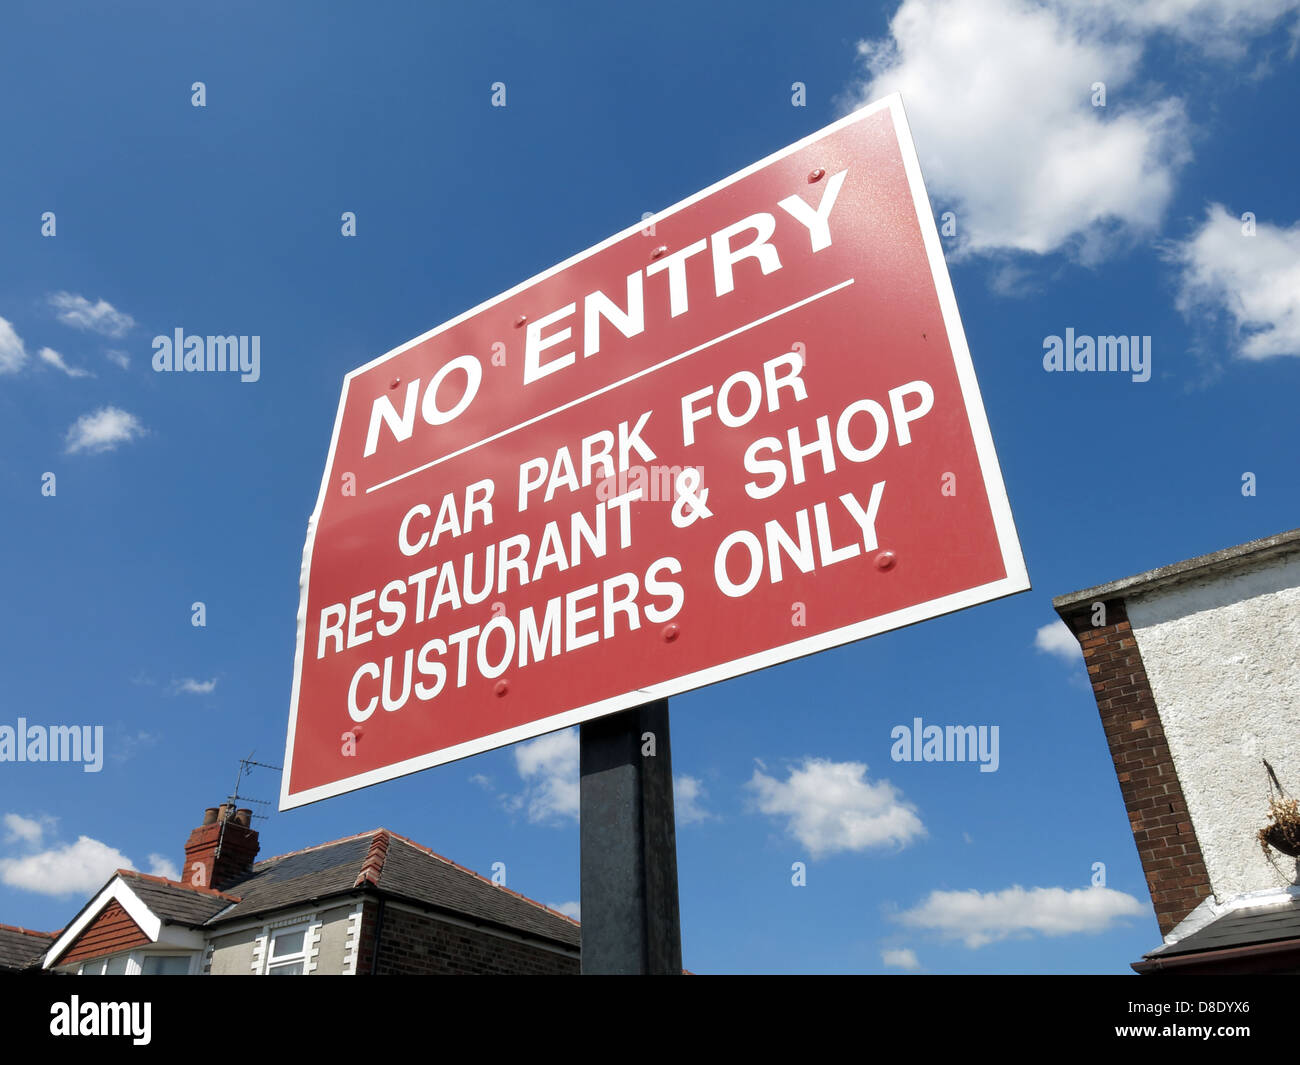 Red No entry Sign preventing parking to restrict to just hop and restaurant customers only Stock Photo